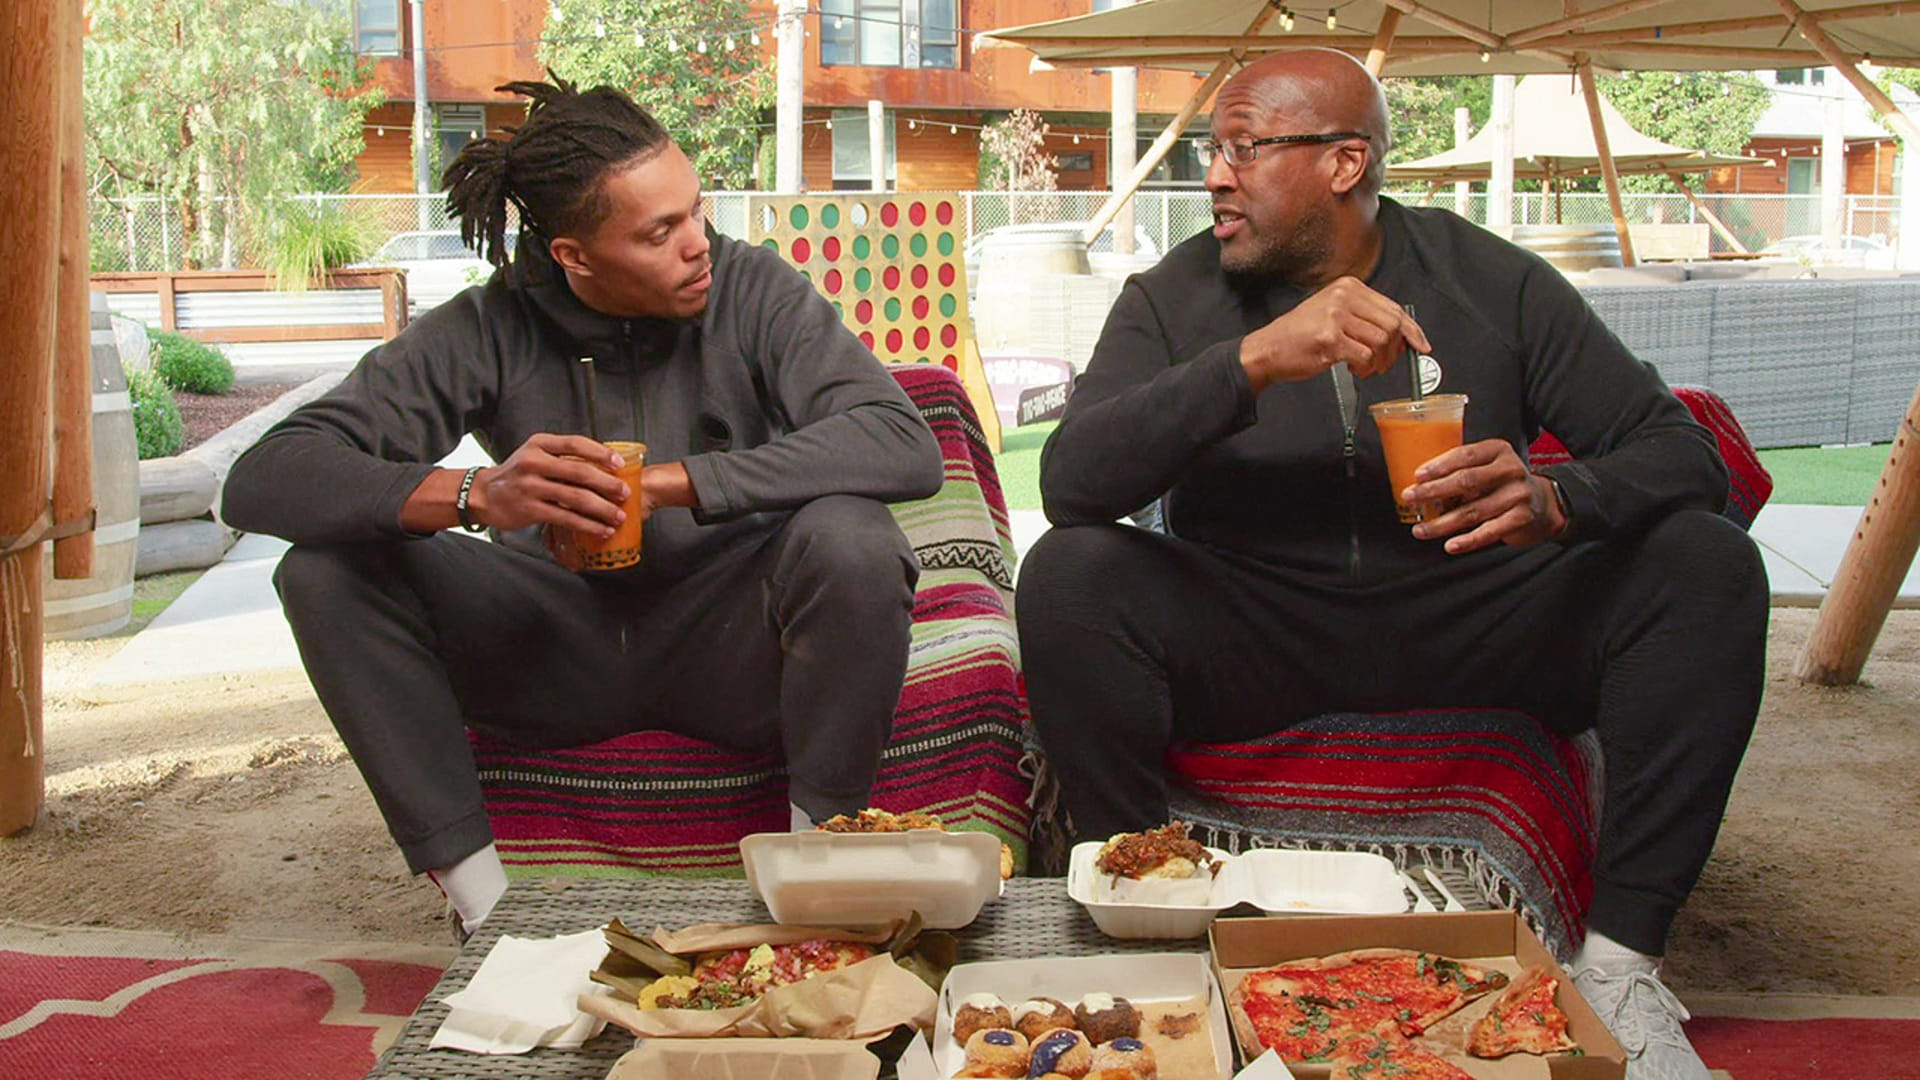 Mission Bay the Warriors Way with Coach Mike Brown and Damion Lee, presented by realtor.com